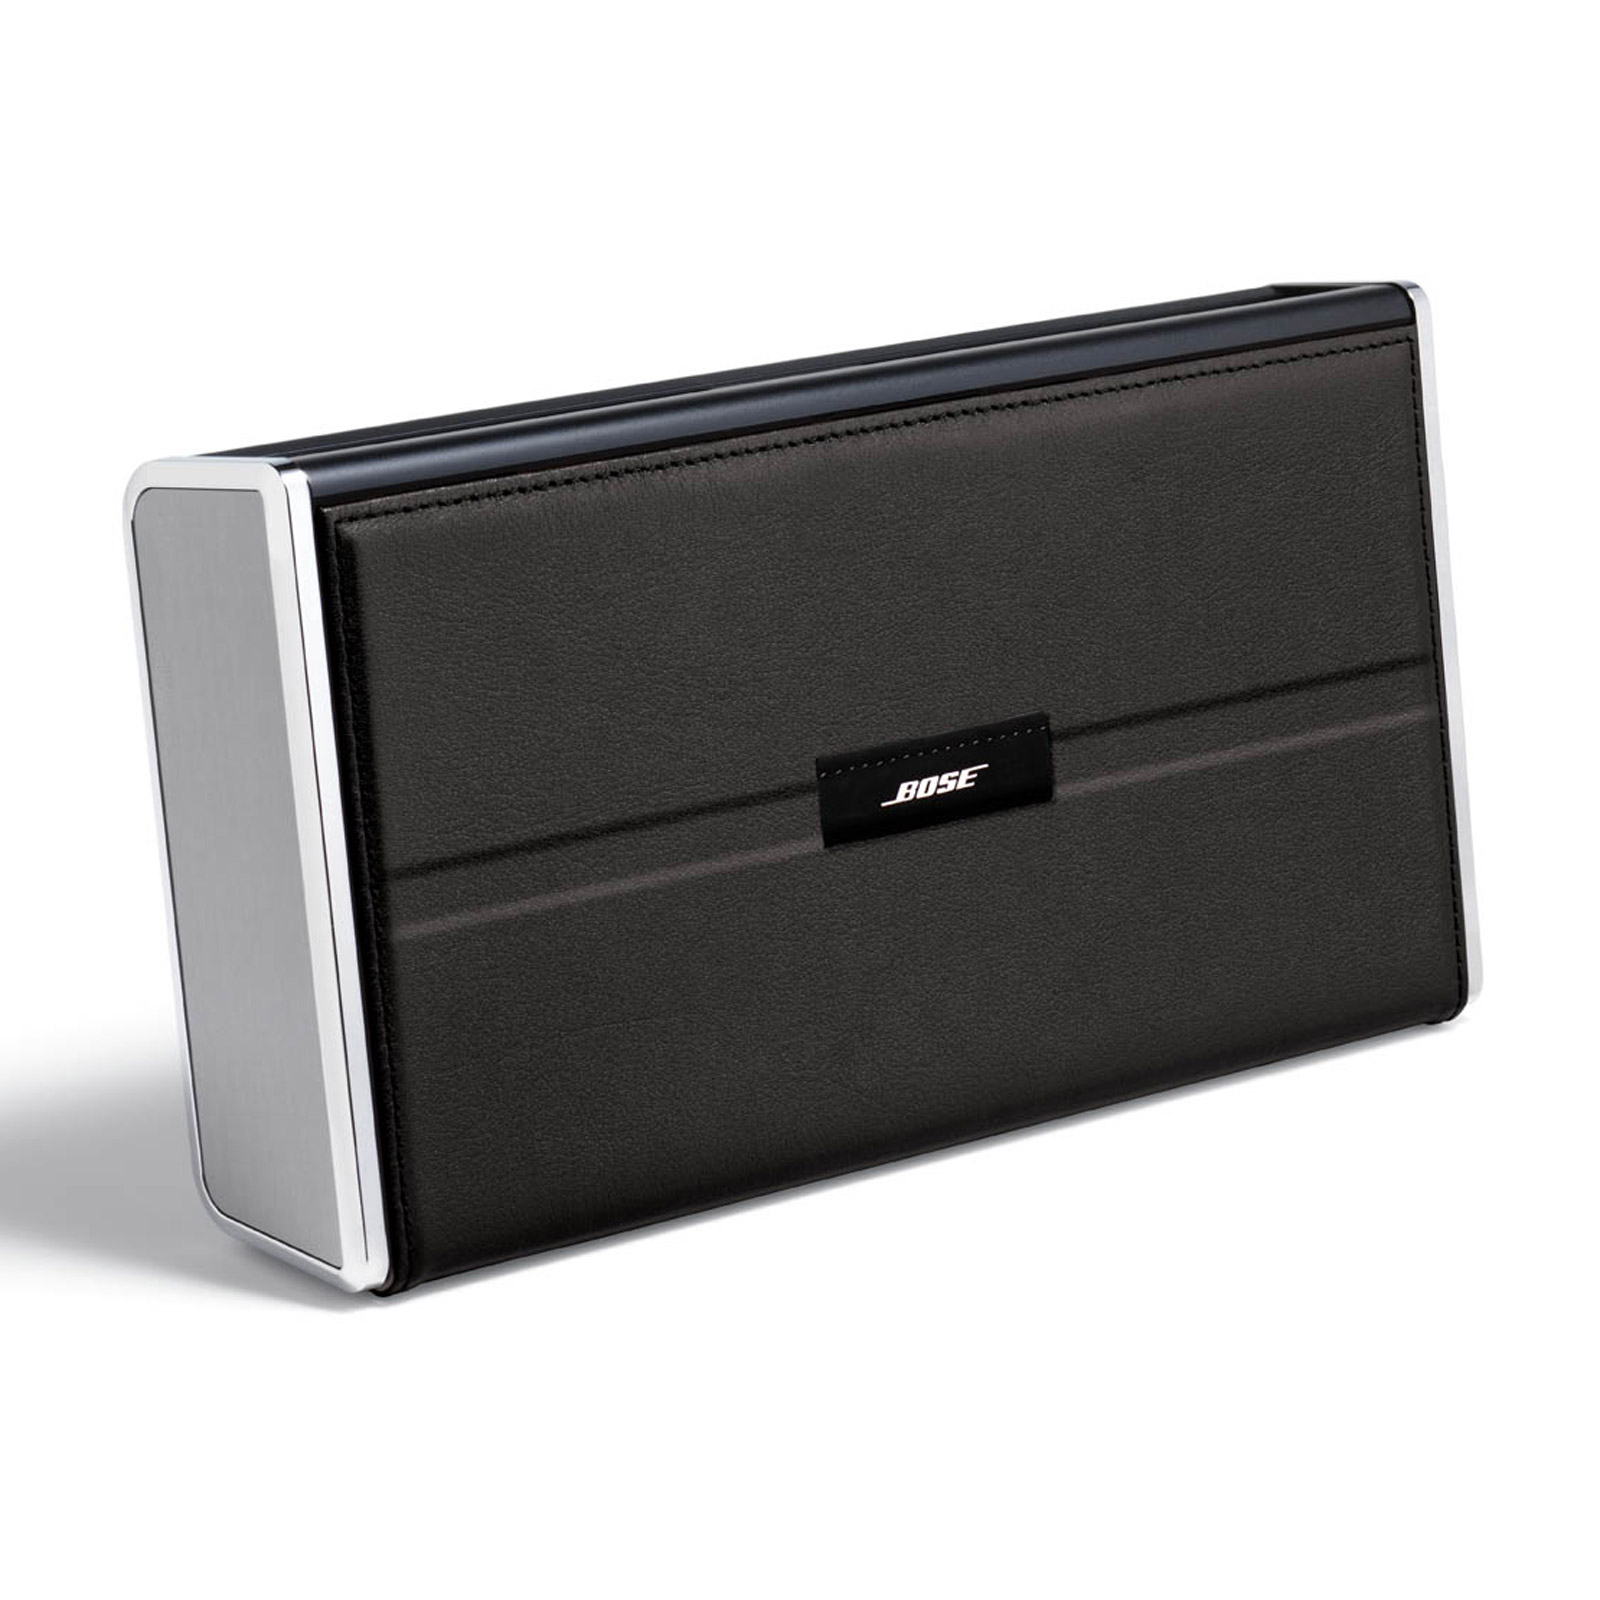 bose soundlink ii cuir dock enceinte bluetooth bose sur ldlc. Black Bedroom Furniture Sets. Home Design Ideas